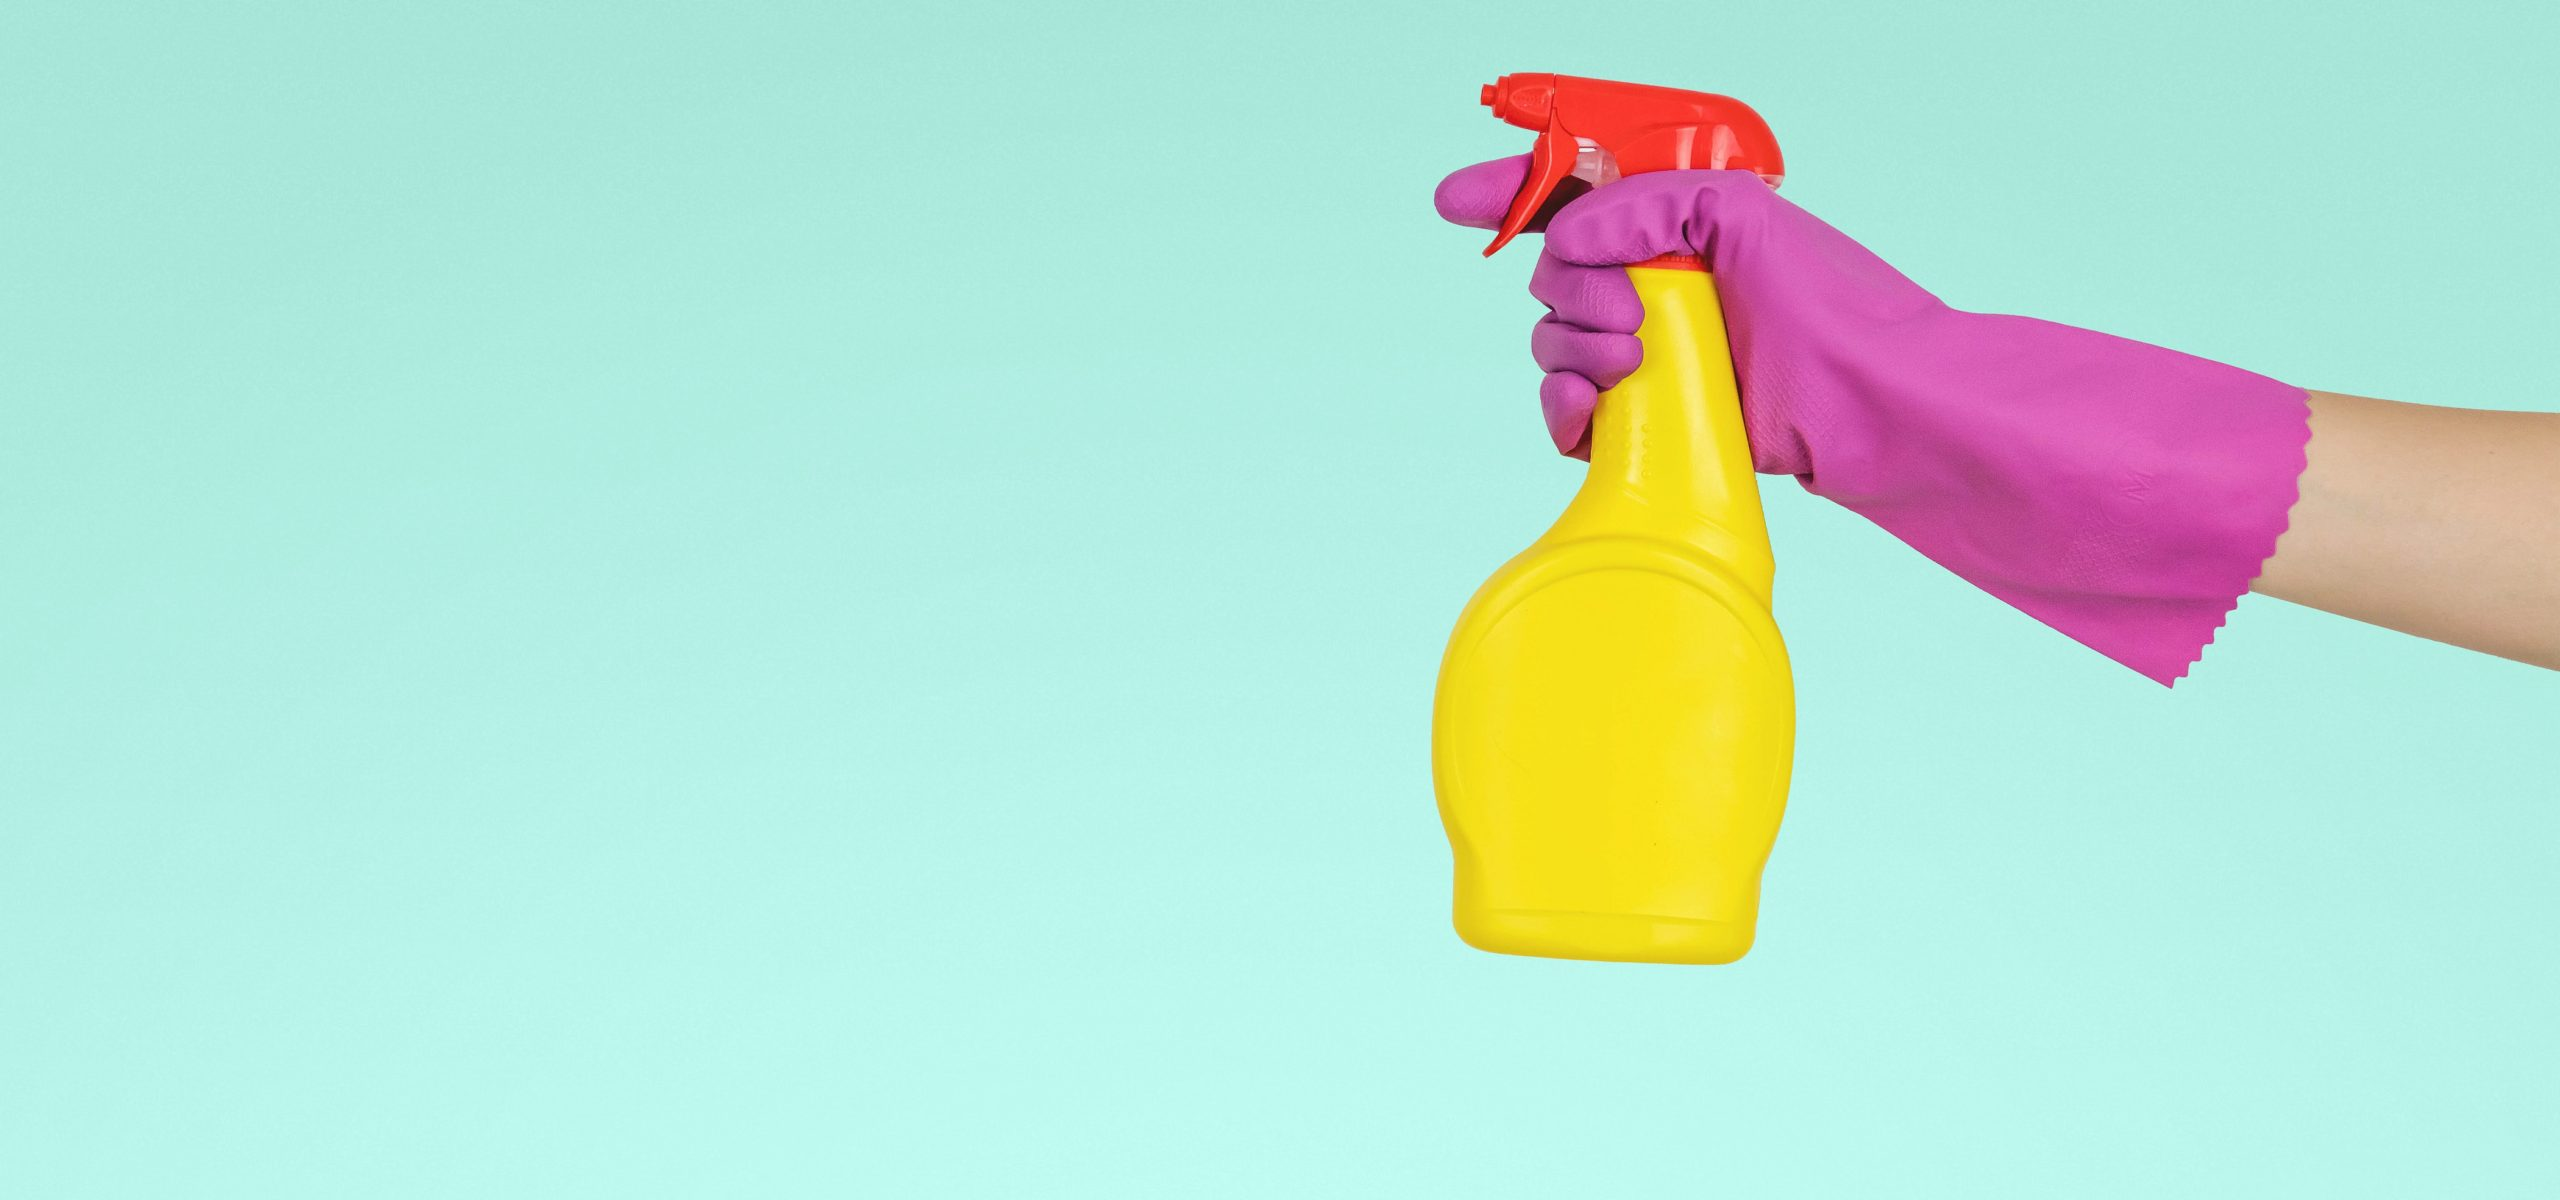 Cleaning bottle - reduce pollution